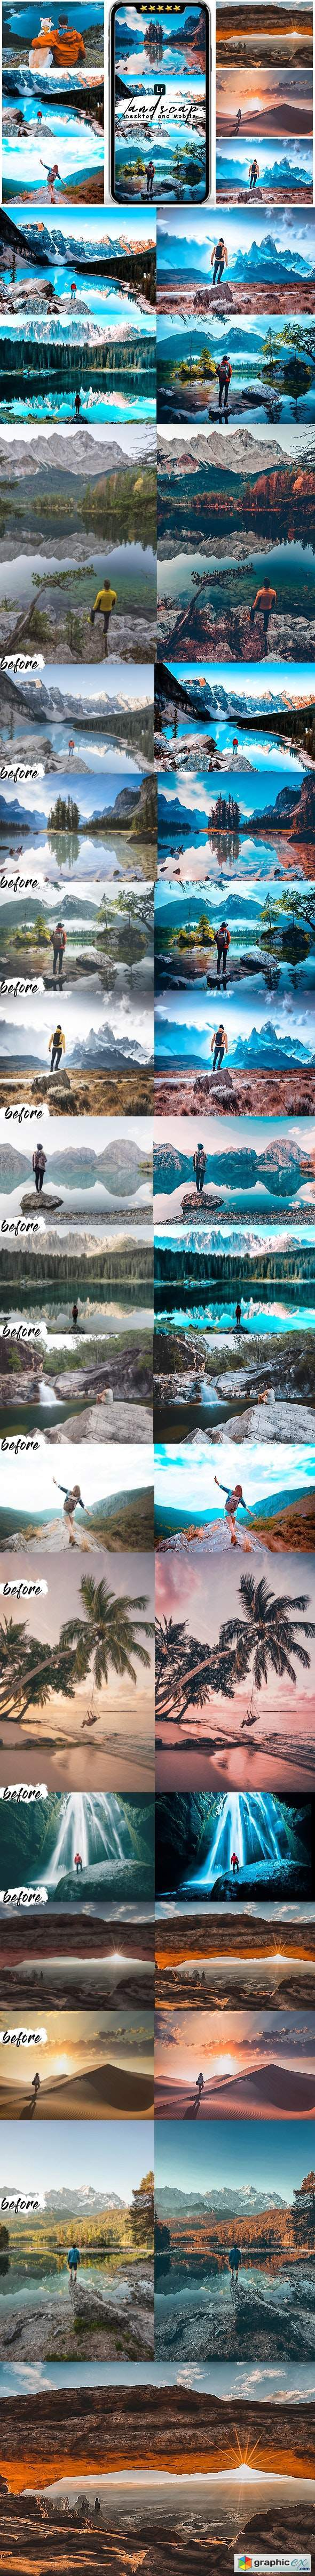 Landscape Presets Preset For Mobile and Desktop Lightroom